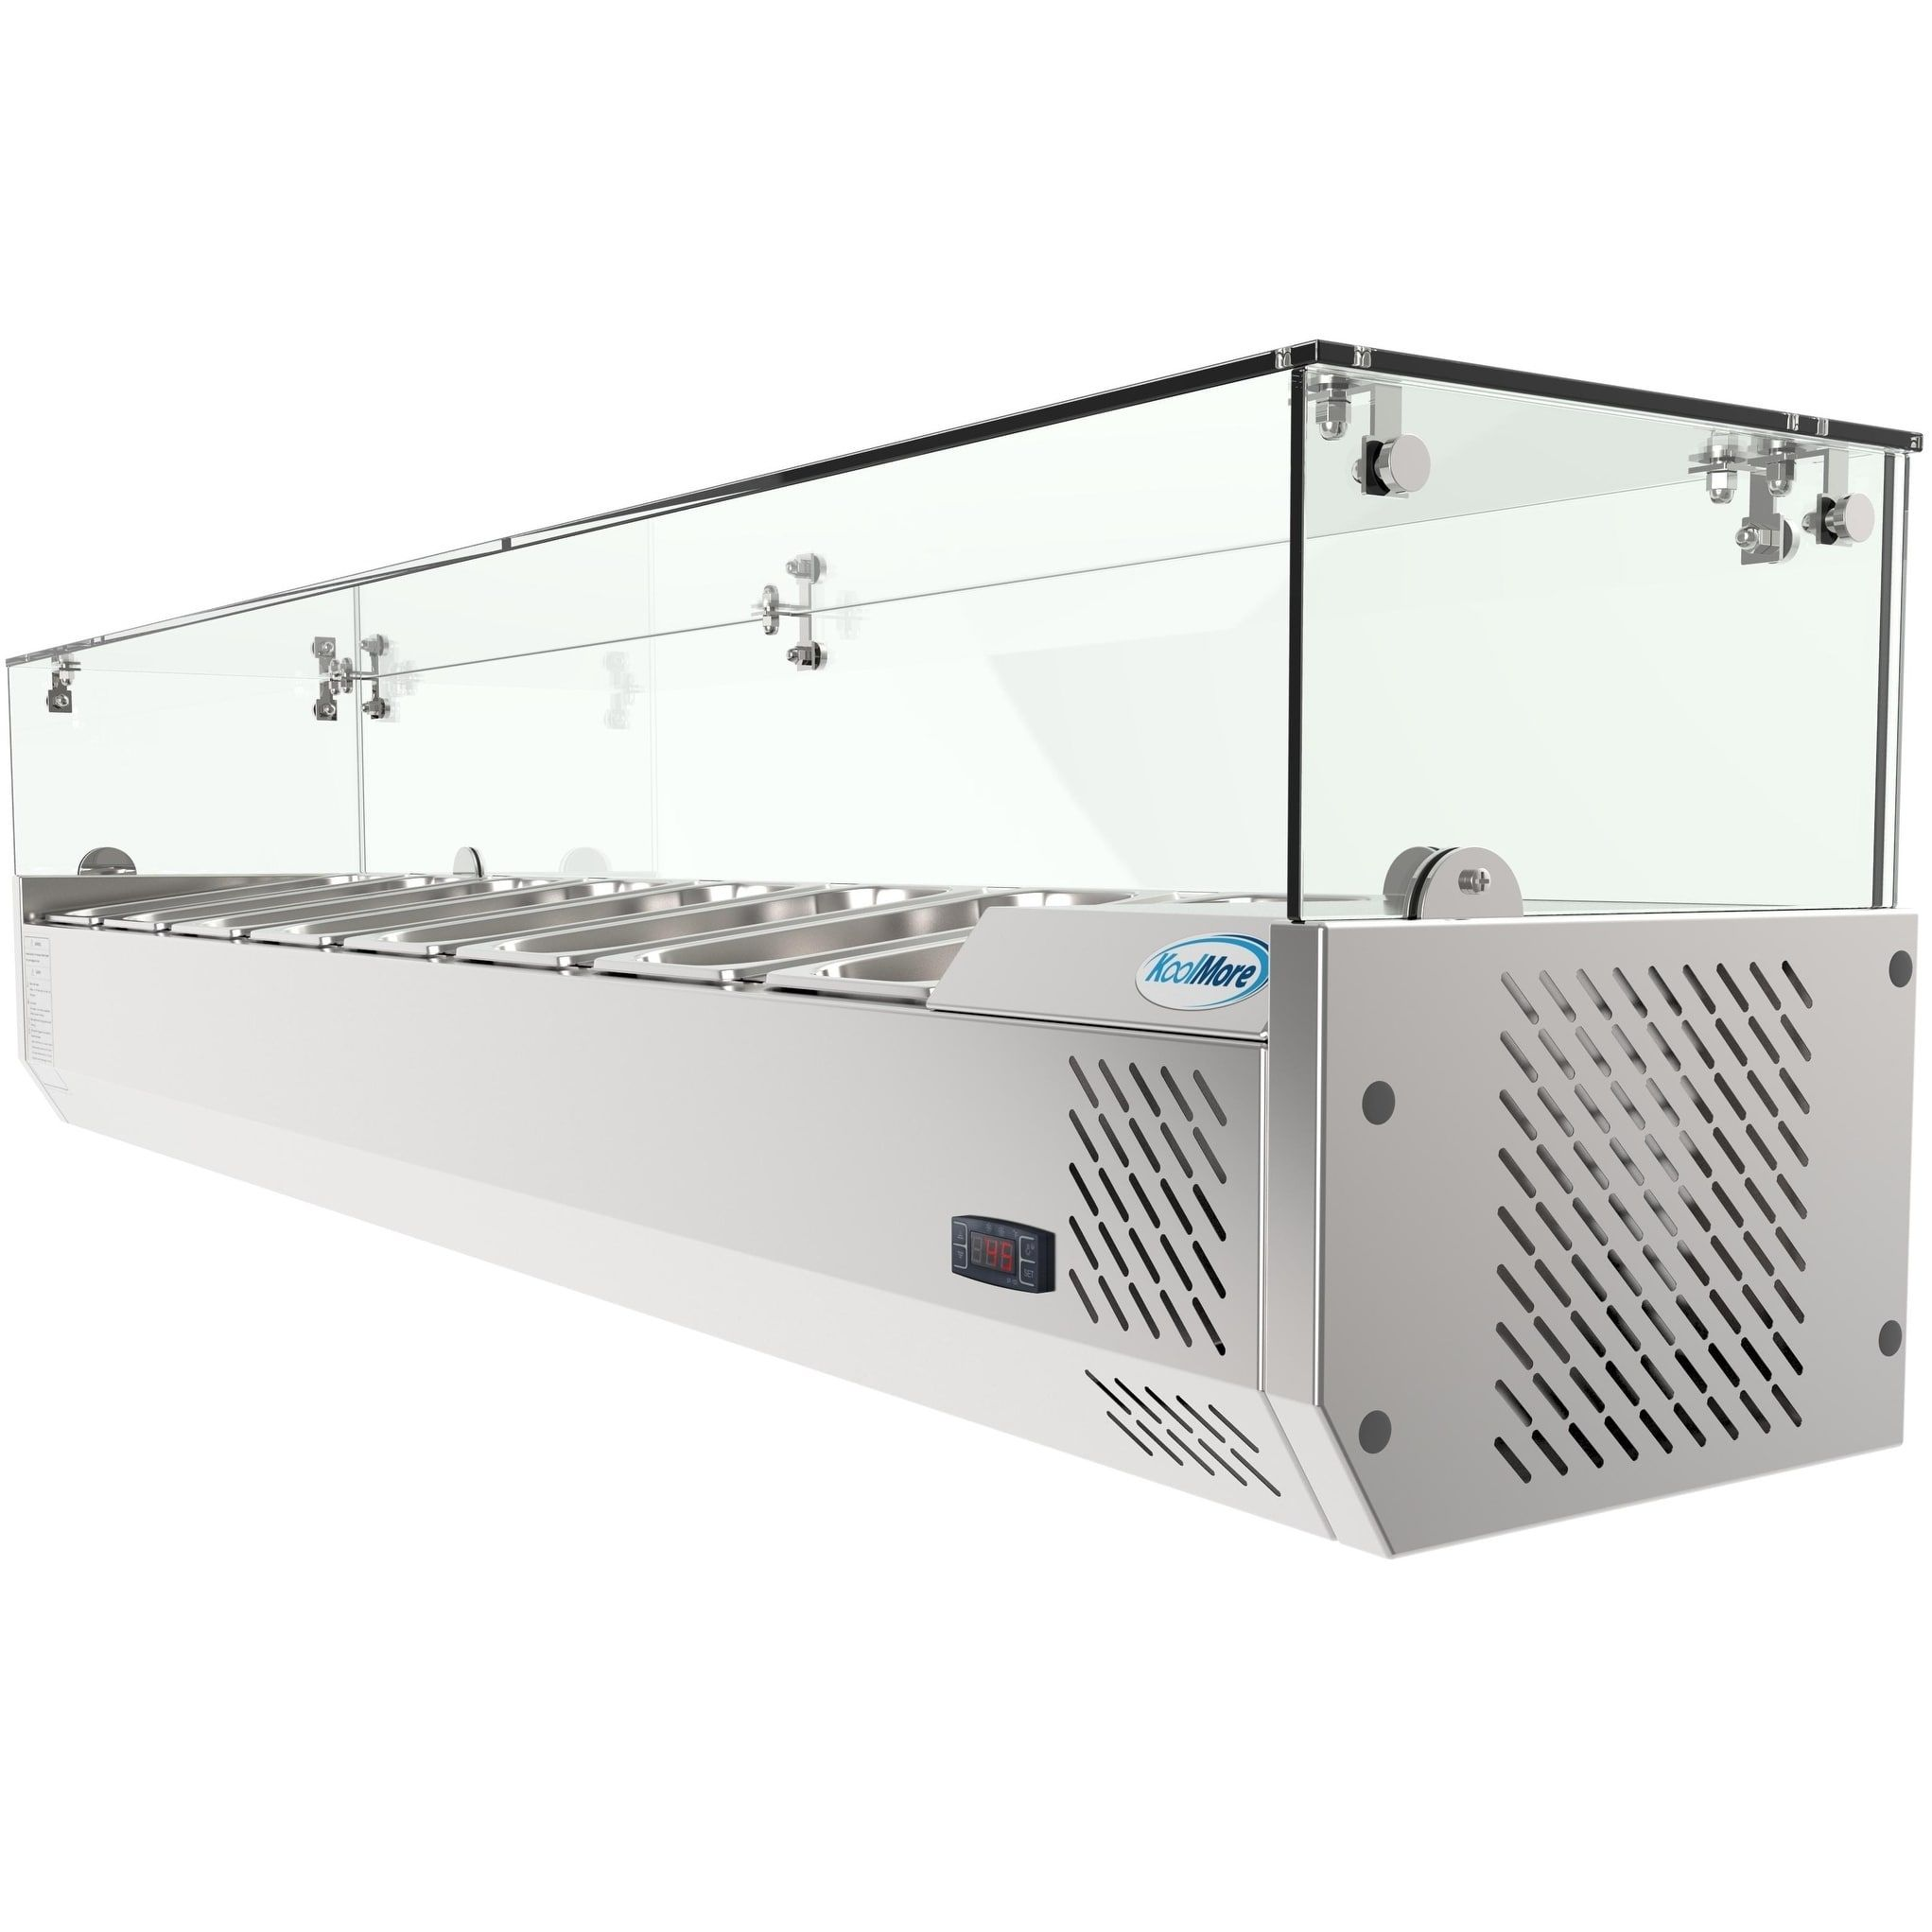 Koolmore 71 Countertop Condiment Refrigerated Prep Station With